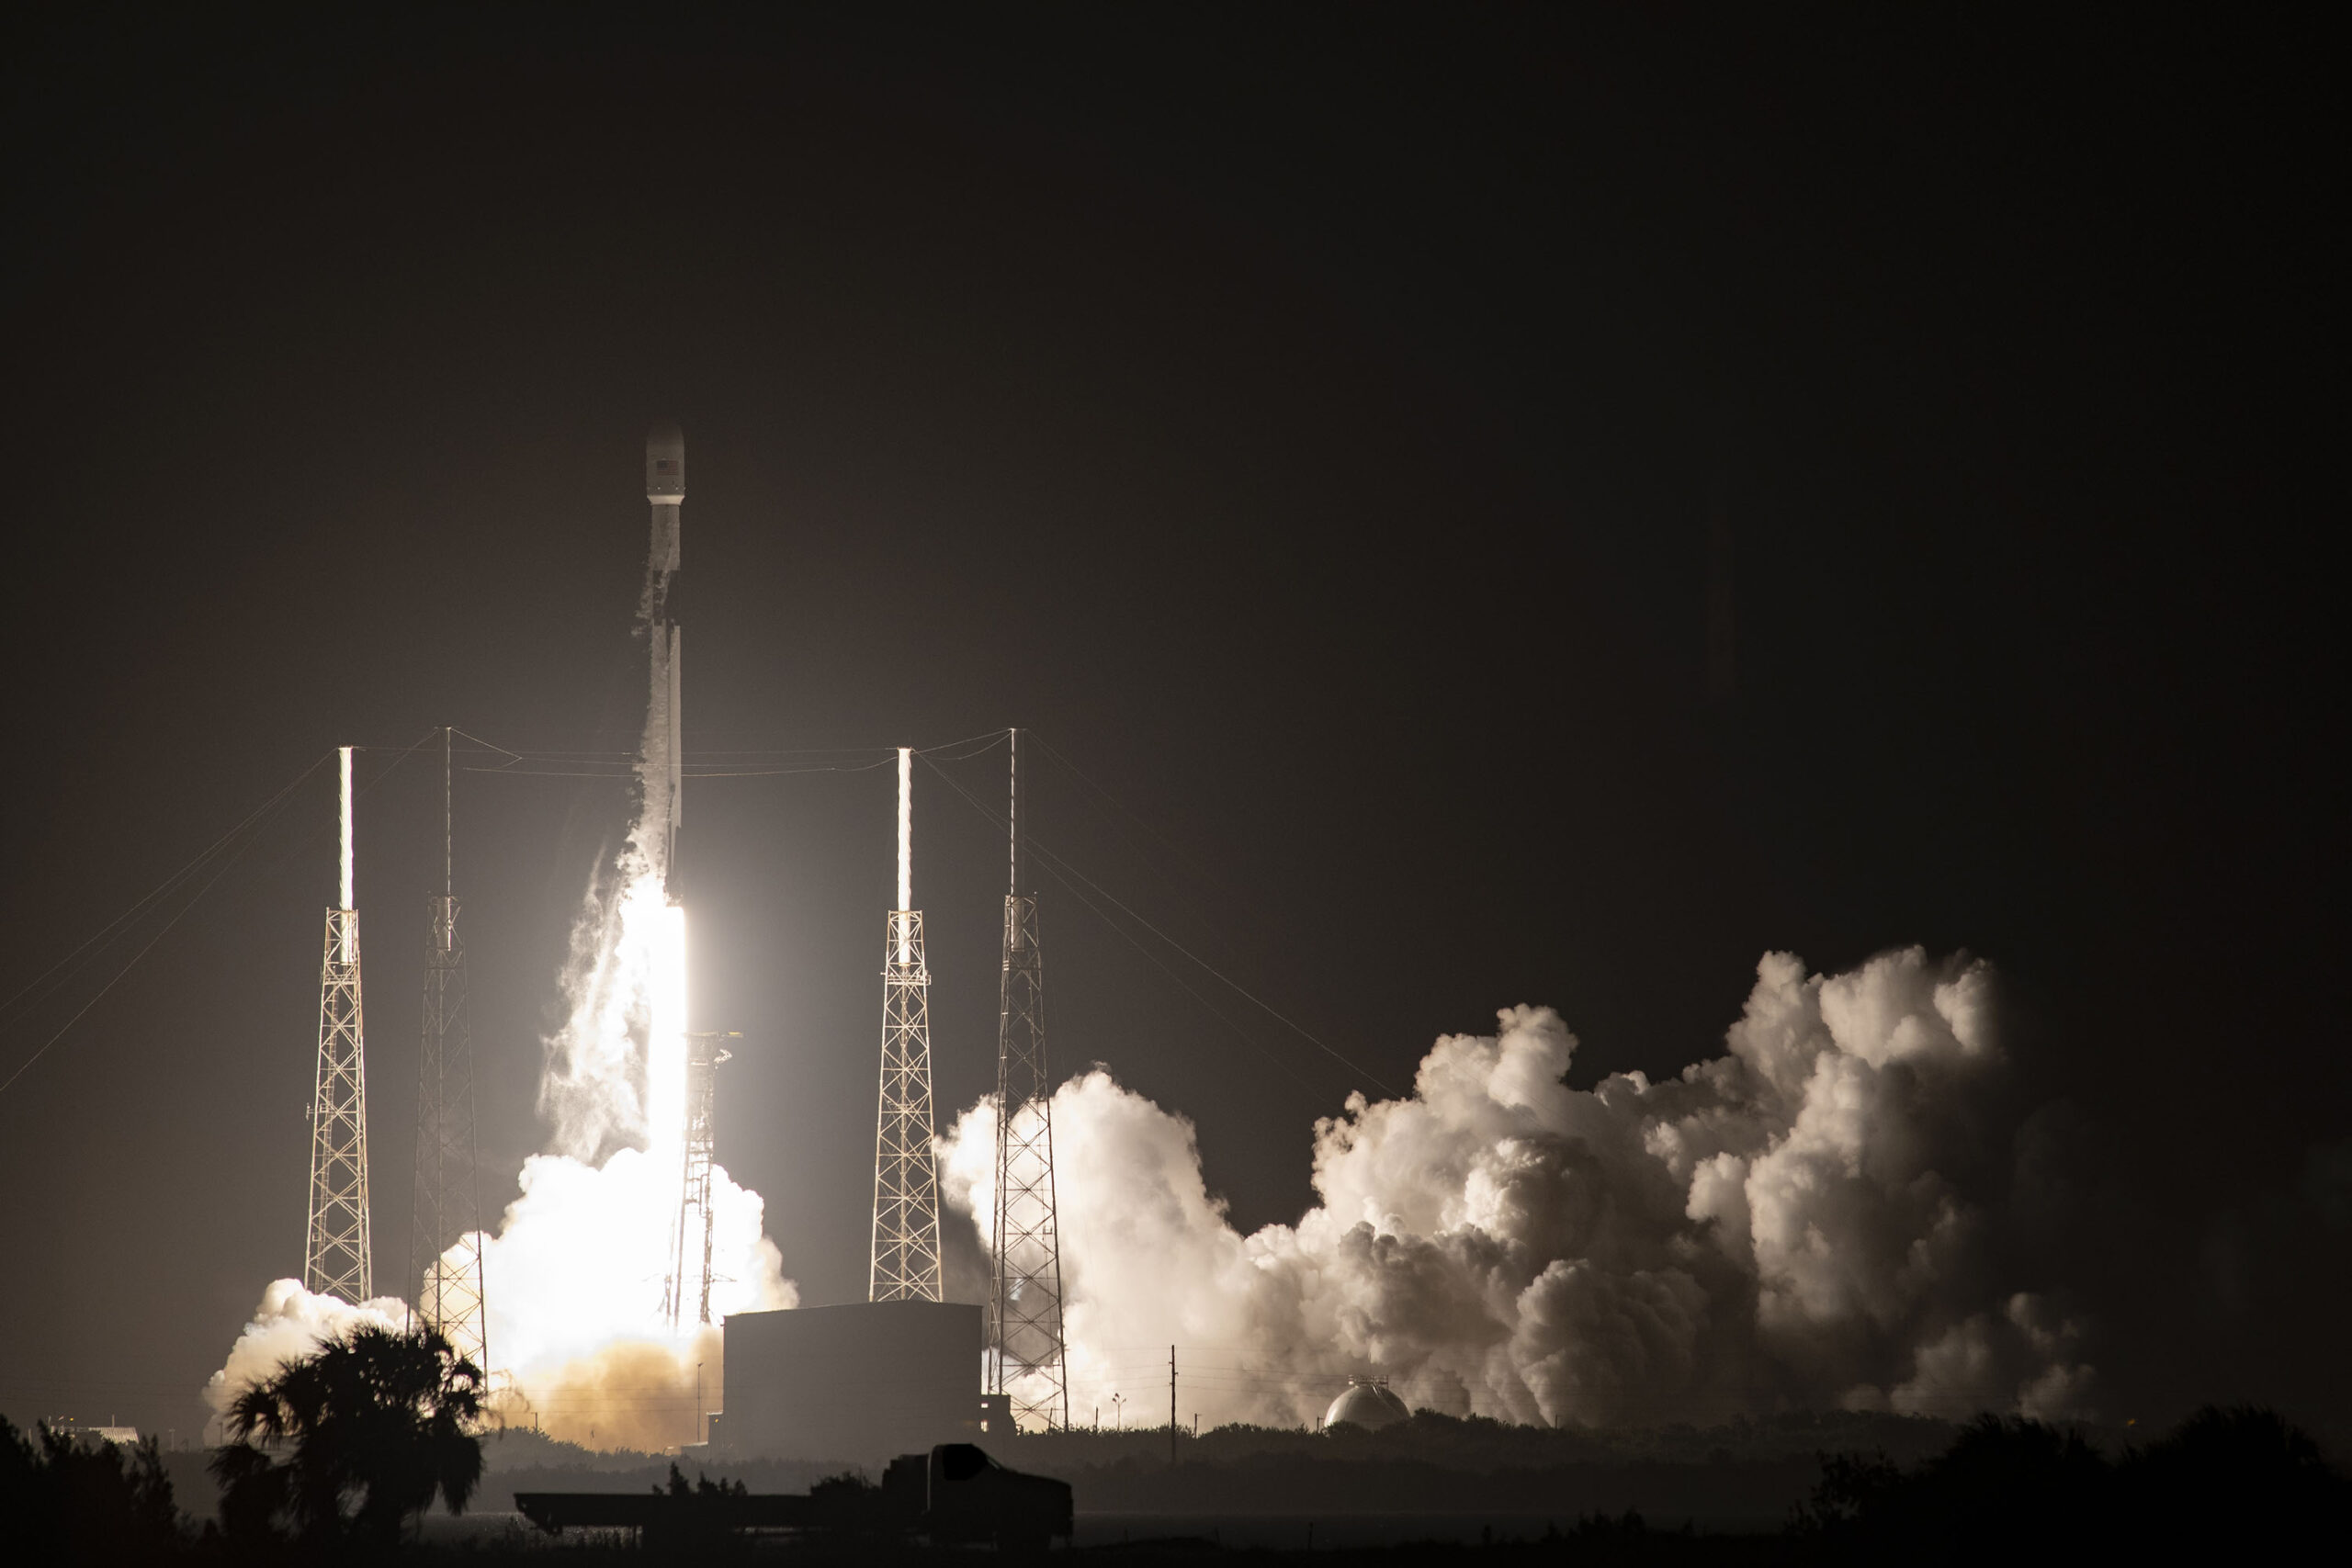 A Falcon 9 carrying GPS III SV04 that was built by Lockheed Martin in Colorado lifts off from Cape Canaveral Air Force Station in Florida in November.